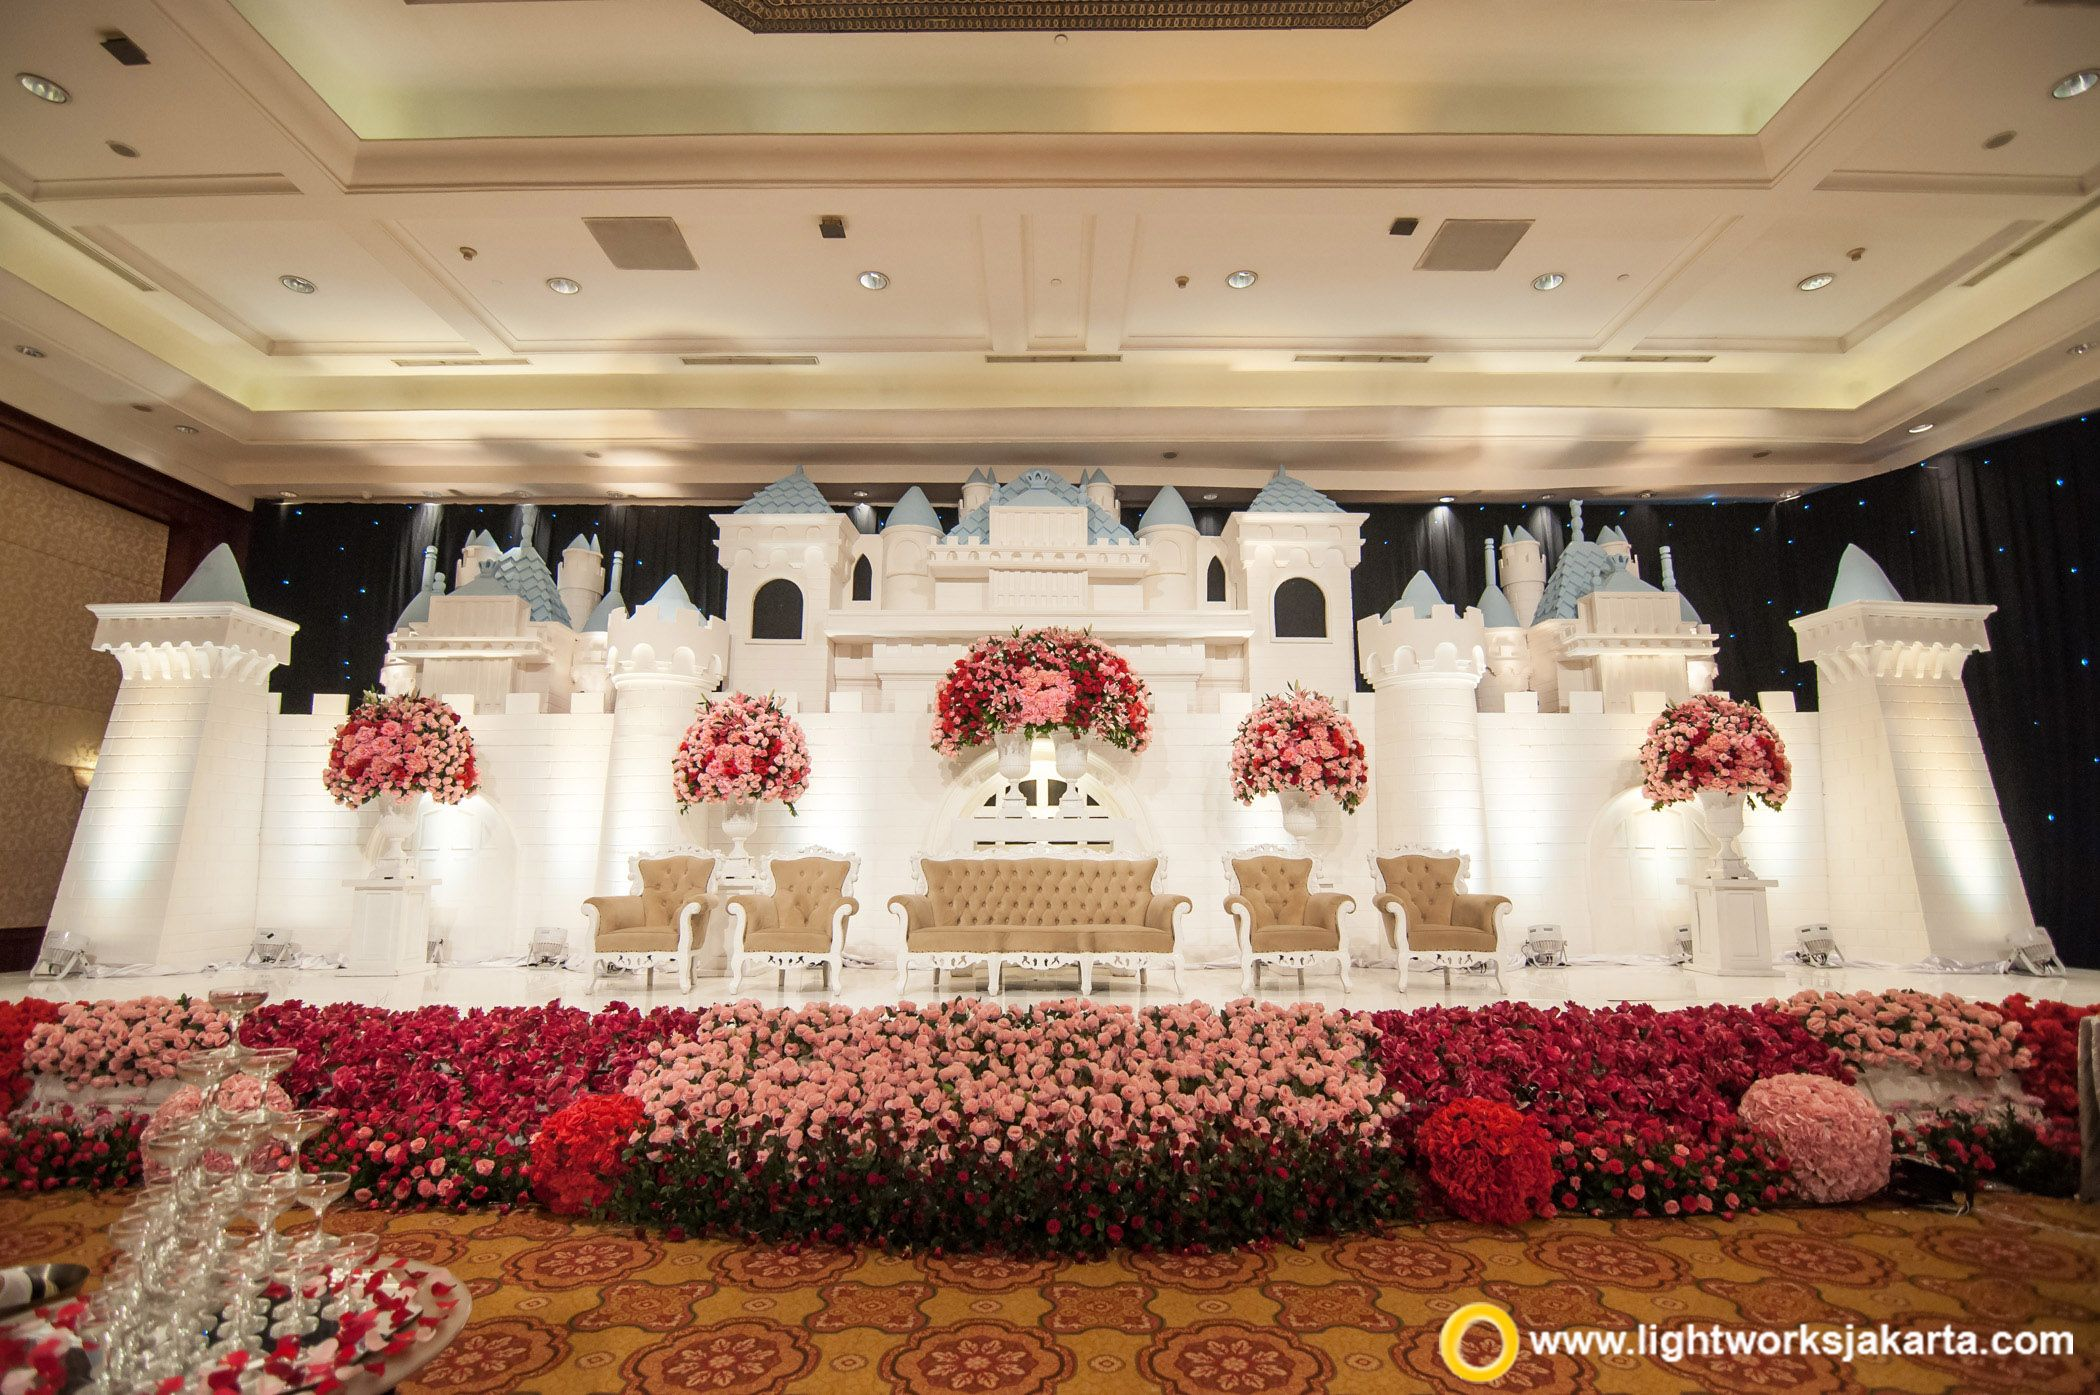 The great palace of love with vica decoration as the decorator and the dome of wedding stage junglespirit Choice Image